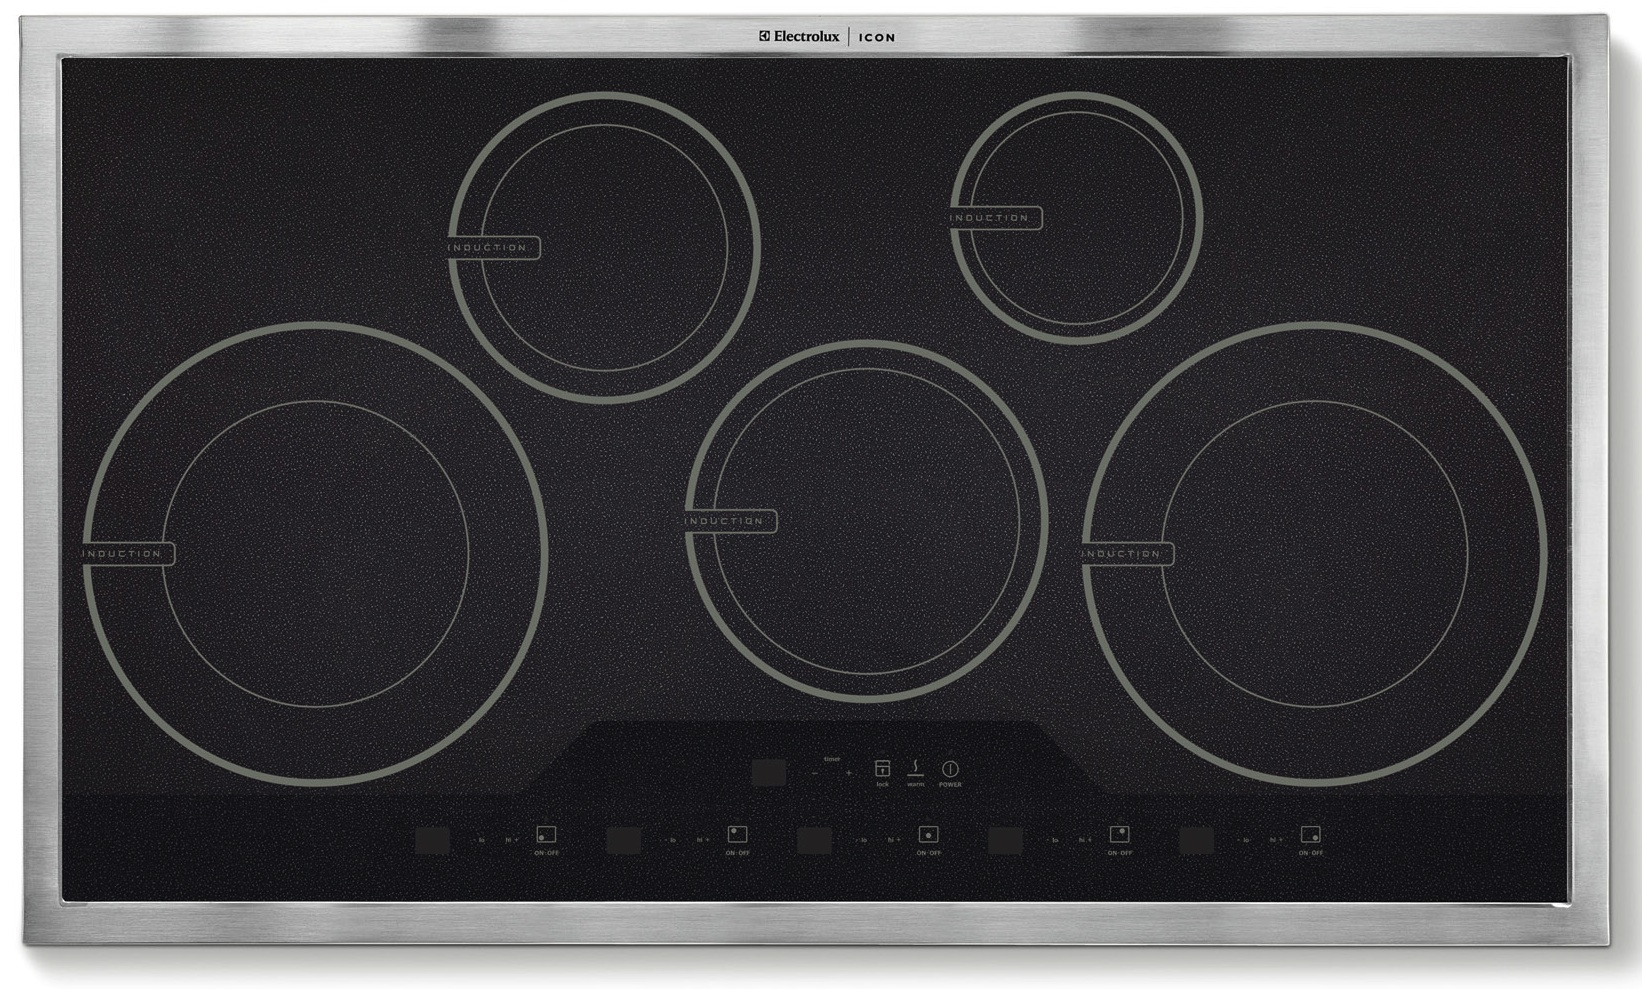 New Electrolux Icon Stainless Steel 36 inch Full Induction Cooktop E36IC80ISS